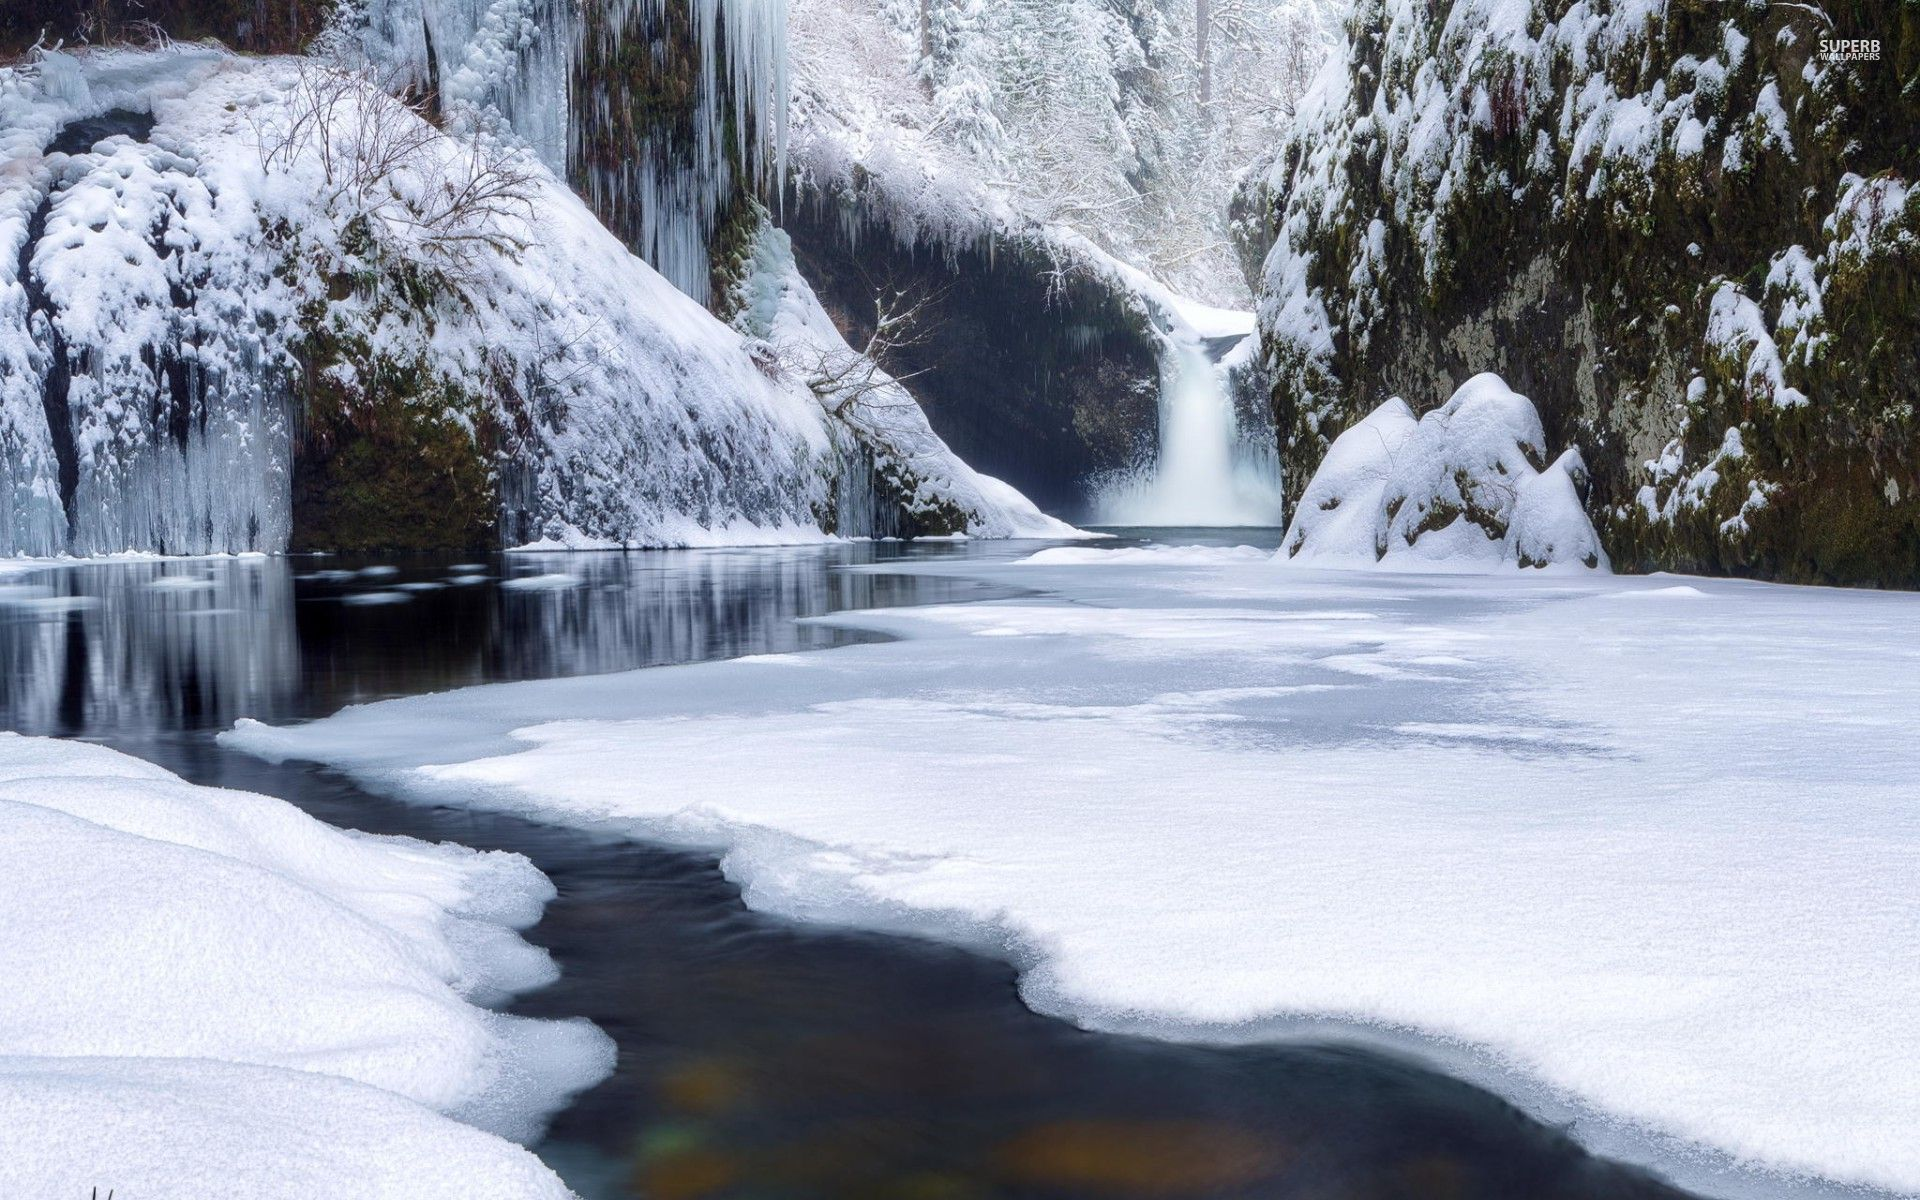 3d Waterfall Wallpaper For Mobile Waterfall River Snowy Forest Wallpapers Waterfall River